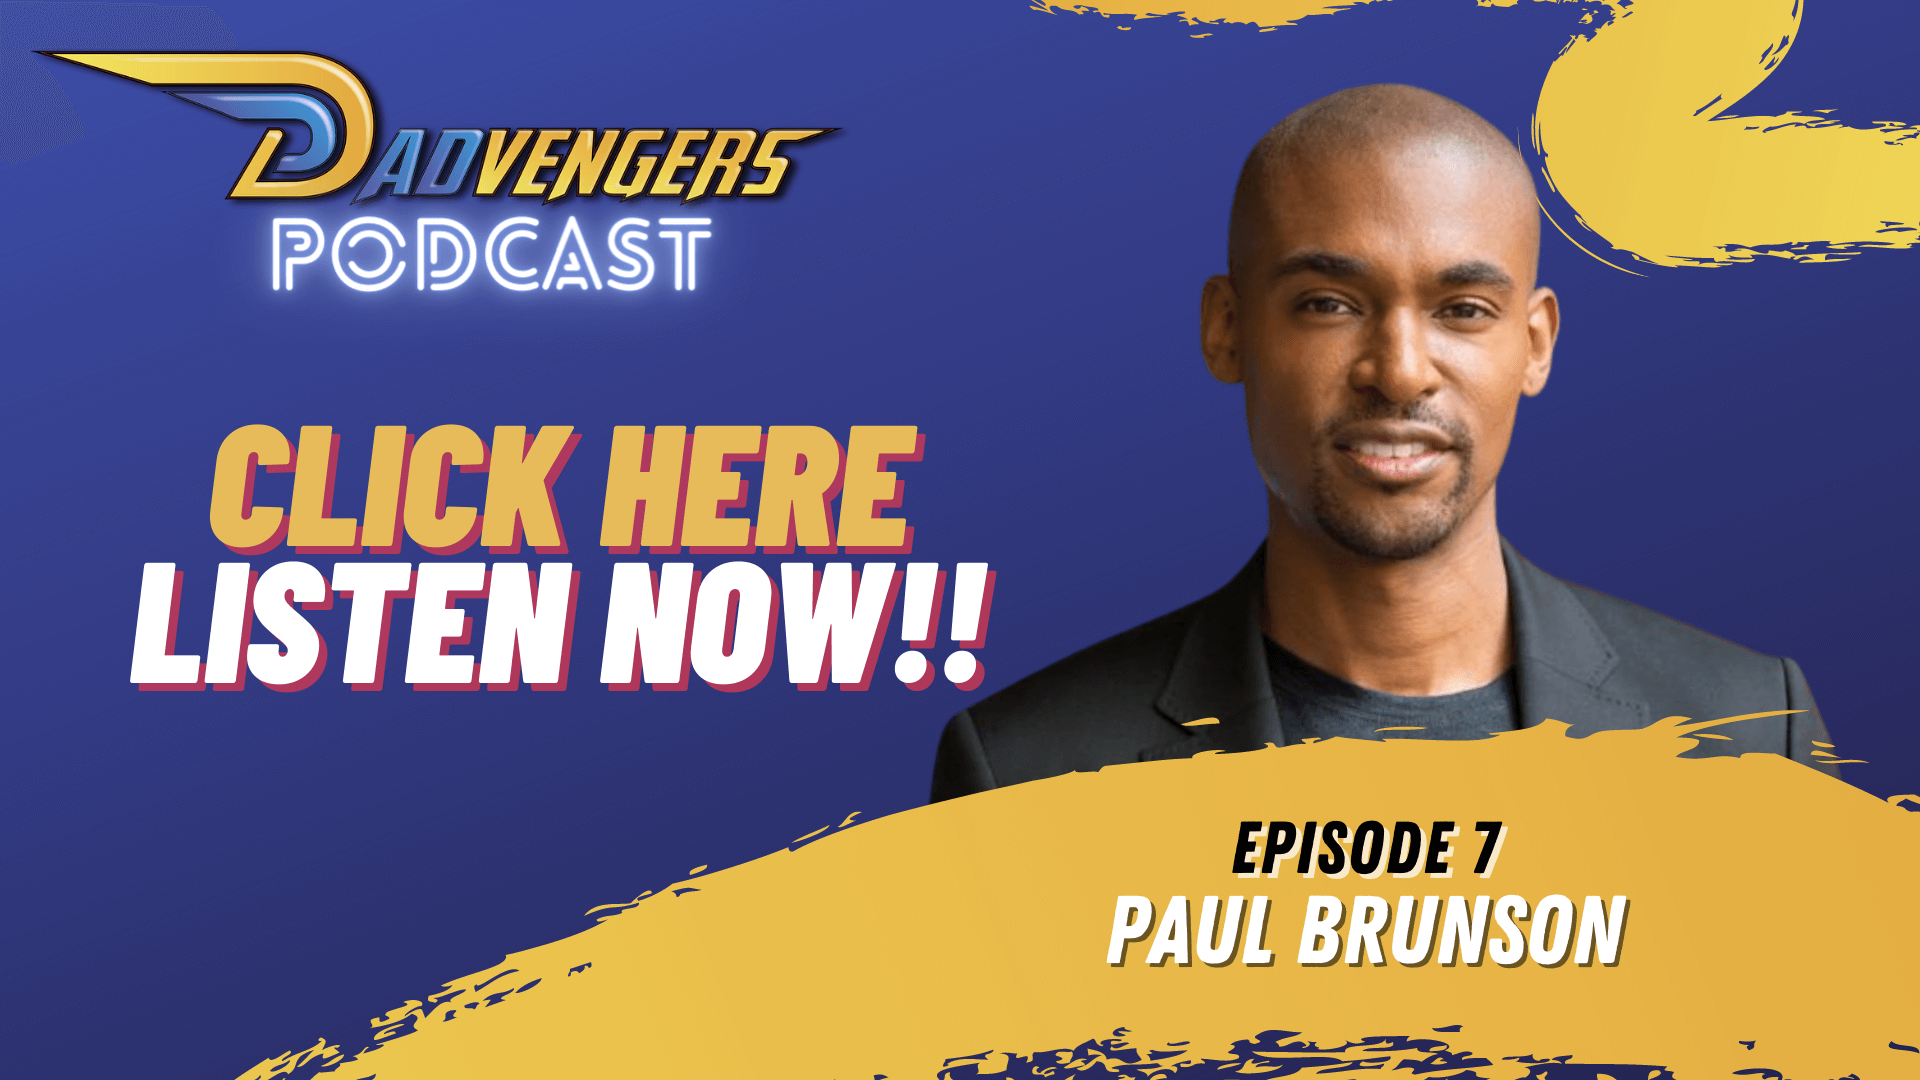 Podcast Ep 7 - Paul Brunson Webslider 01 (1920x1080)